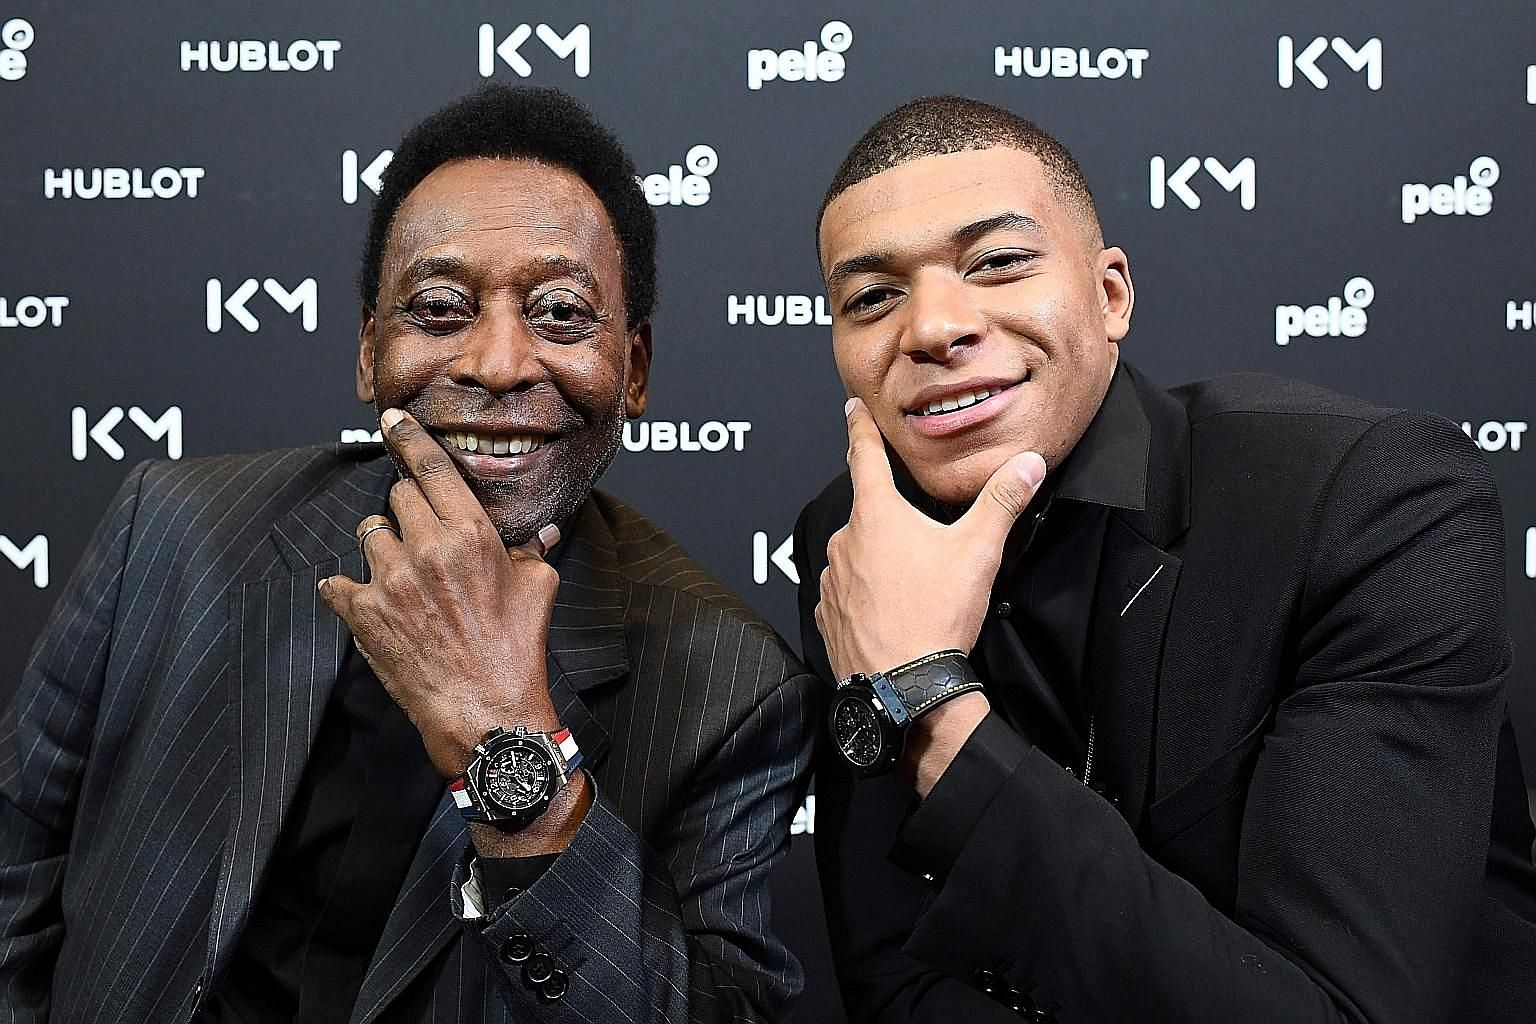 Brazilian football legend Pele, 78, has three World Cup titles while 20-year-old forward Kylian Mbappe won with France last year. The duo met at a promotional event at the Hotel Lutetia in Paris.